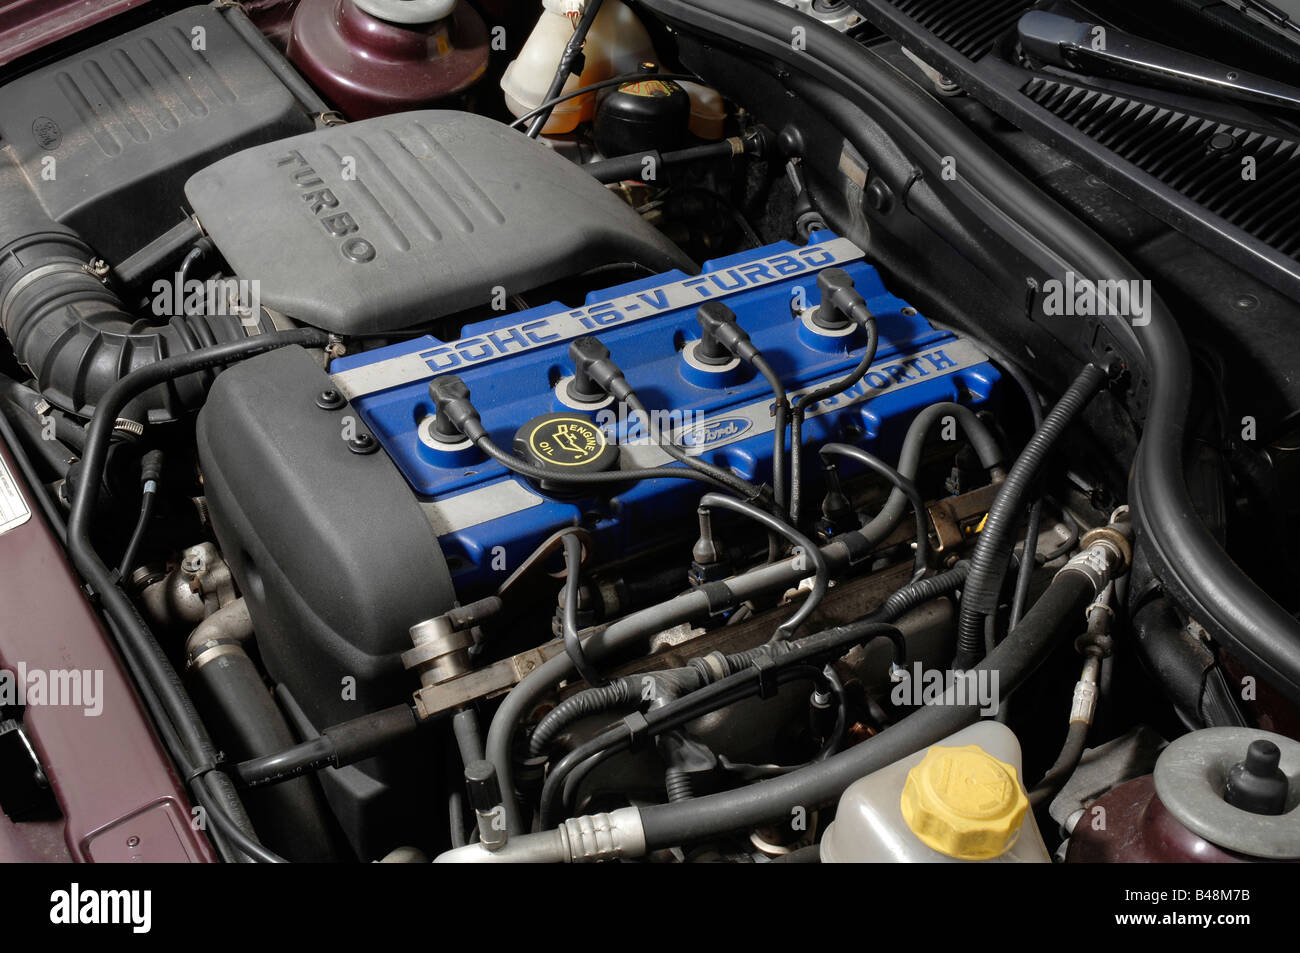 Ford Cosworth Engine Stock Photos & Ford Cosworth Engine